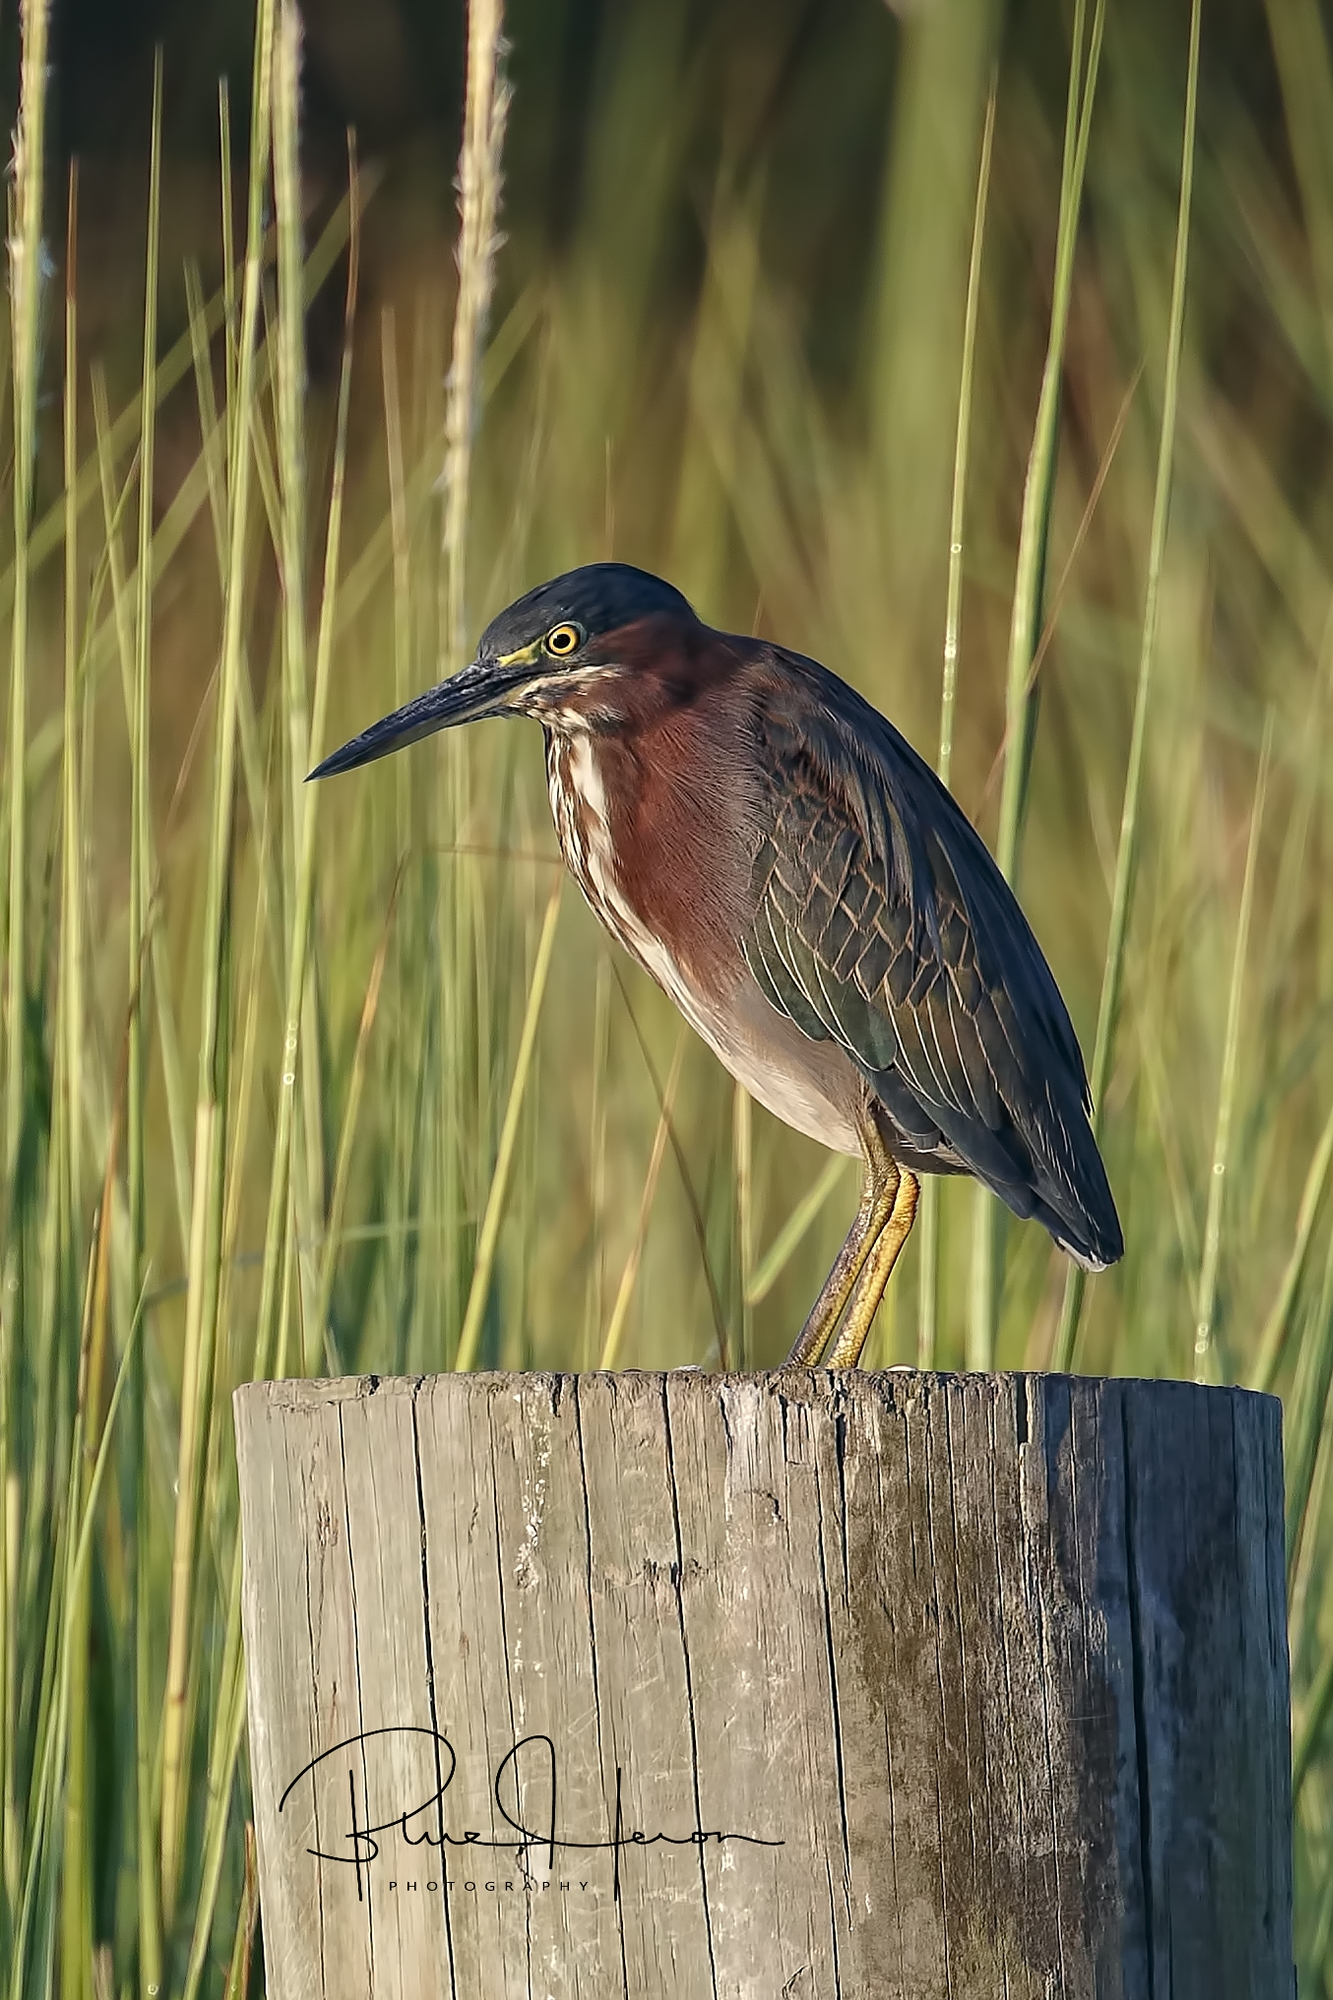 Found a Little Green Heron on the old piling